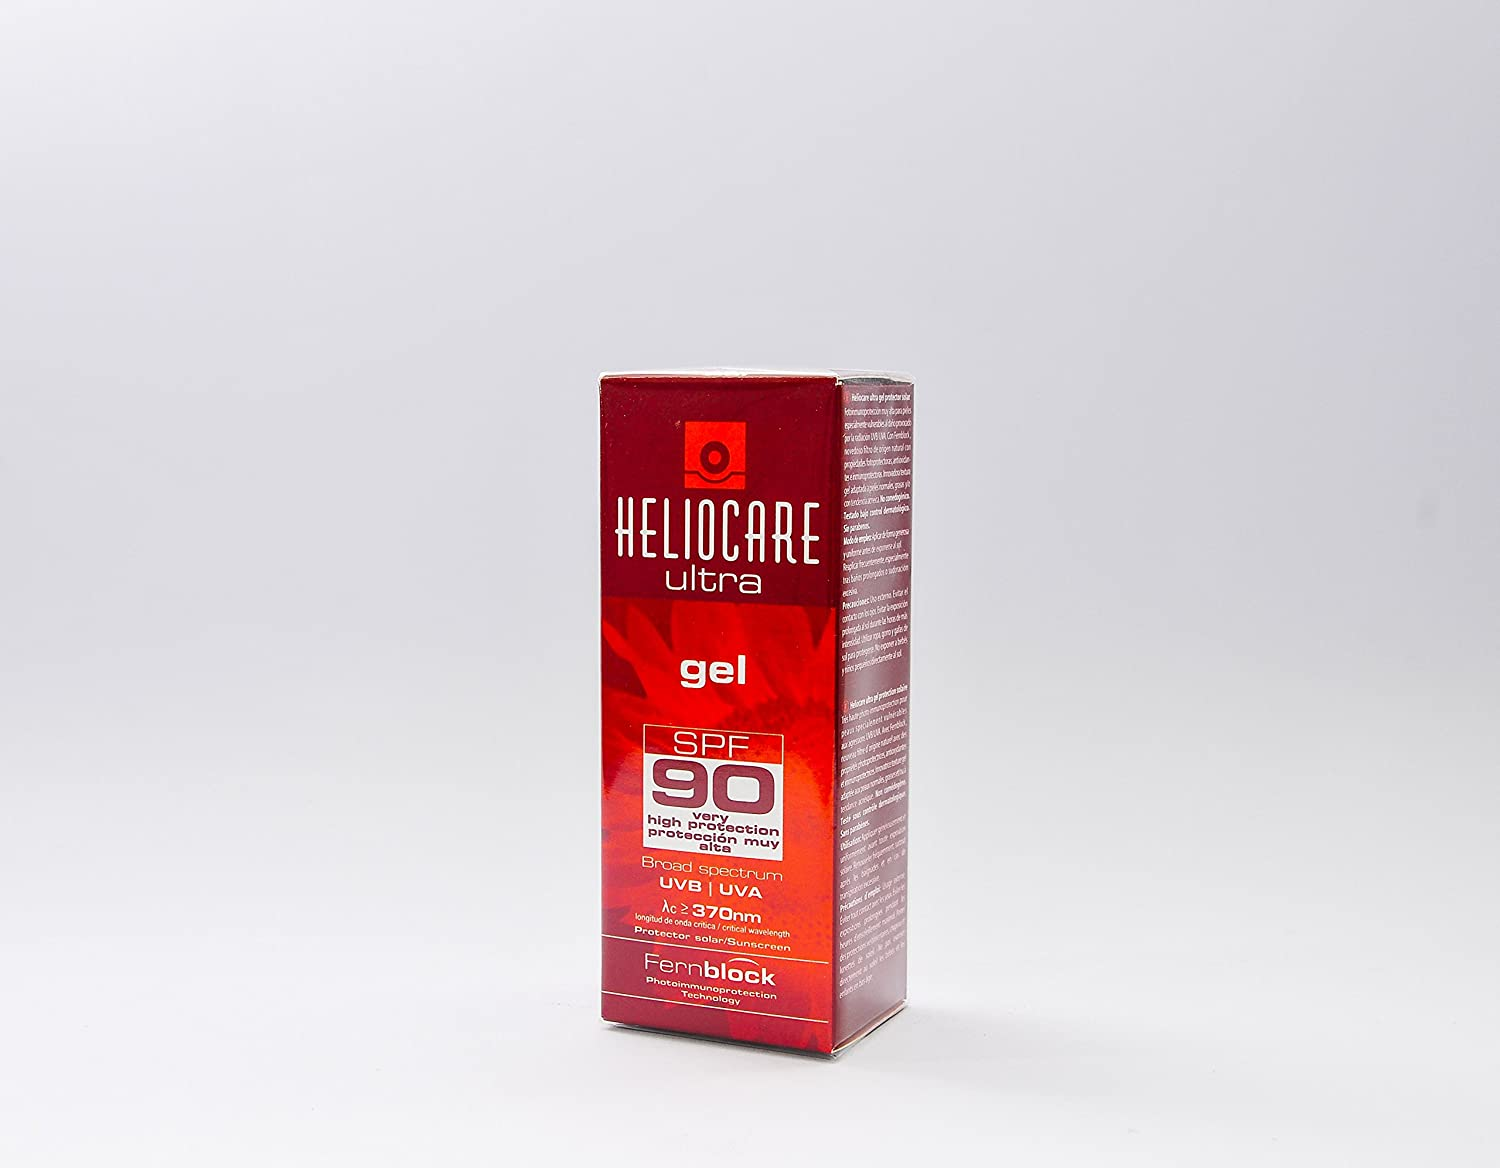 Heliocare Ultra 90 gel high protection Melora 1356